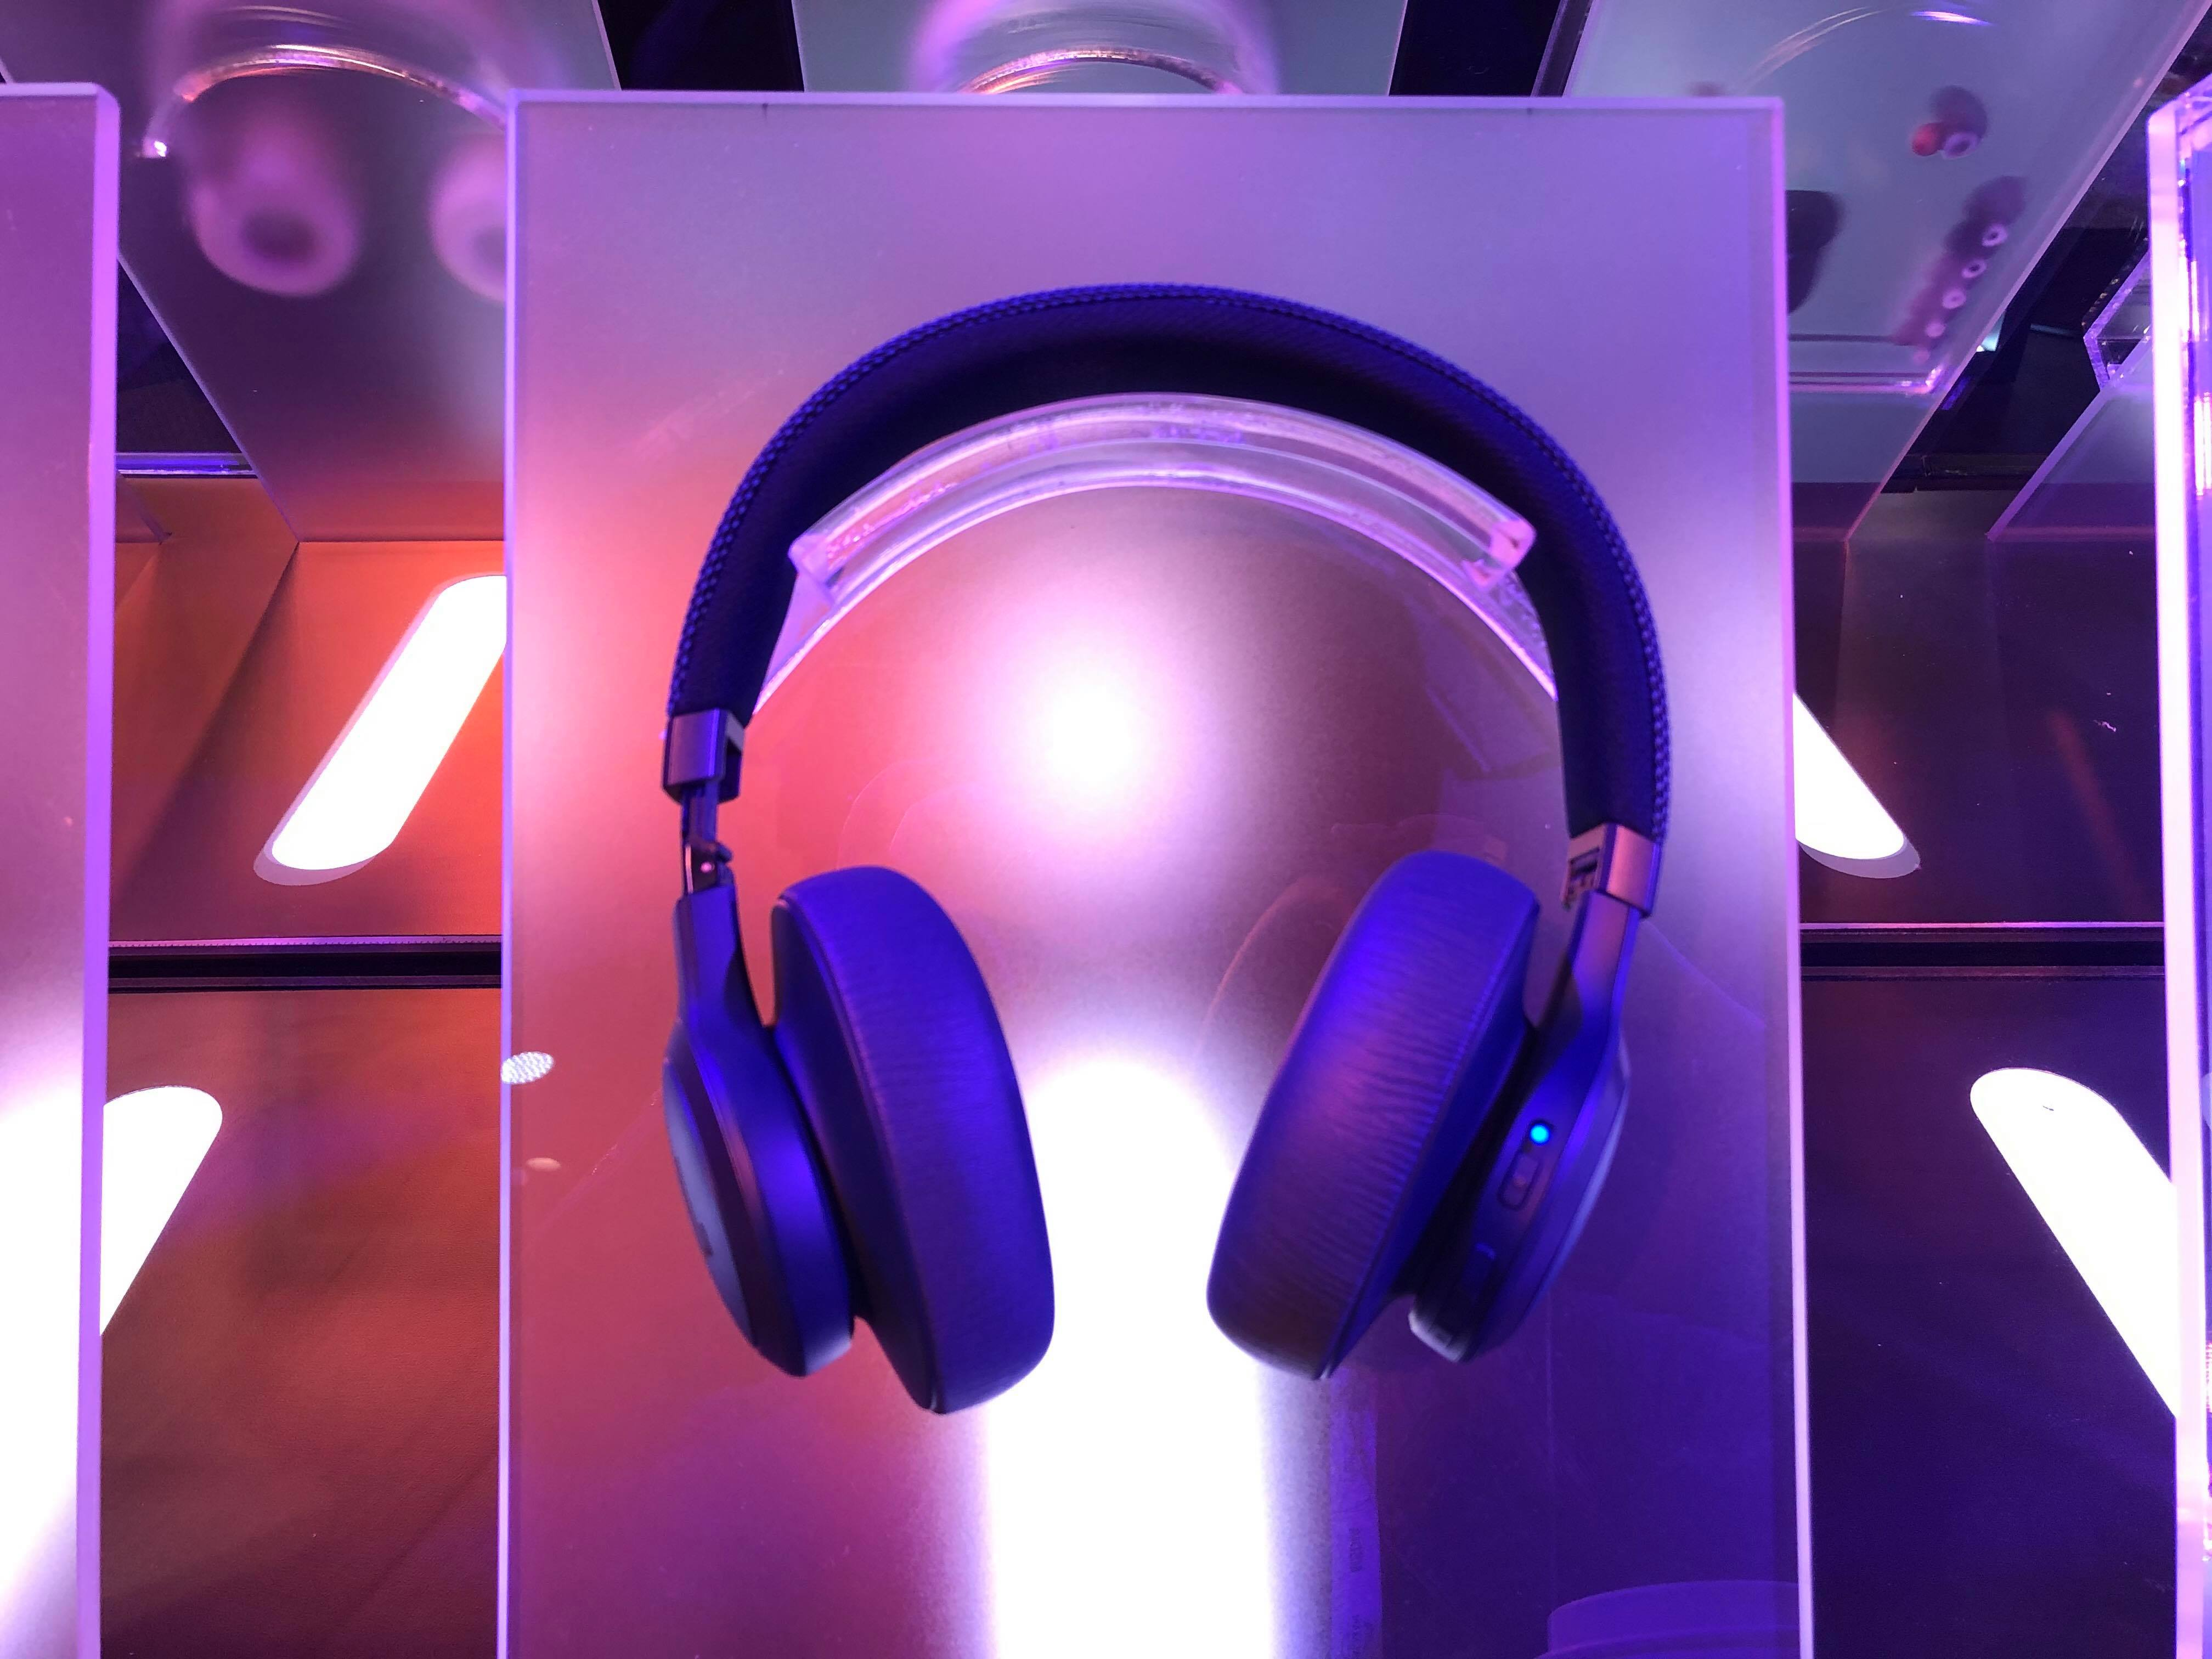 Alexa Or Google Assistant? These Headphones Have Both